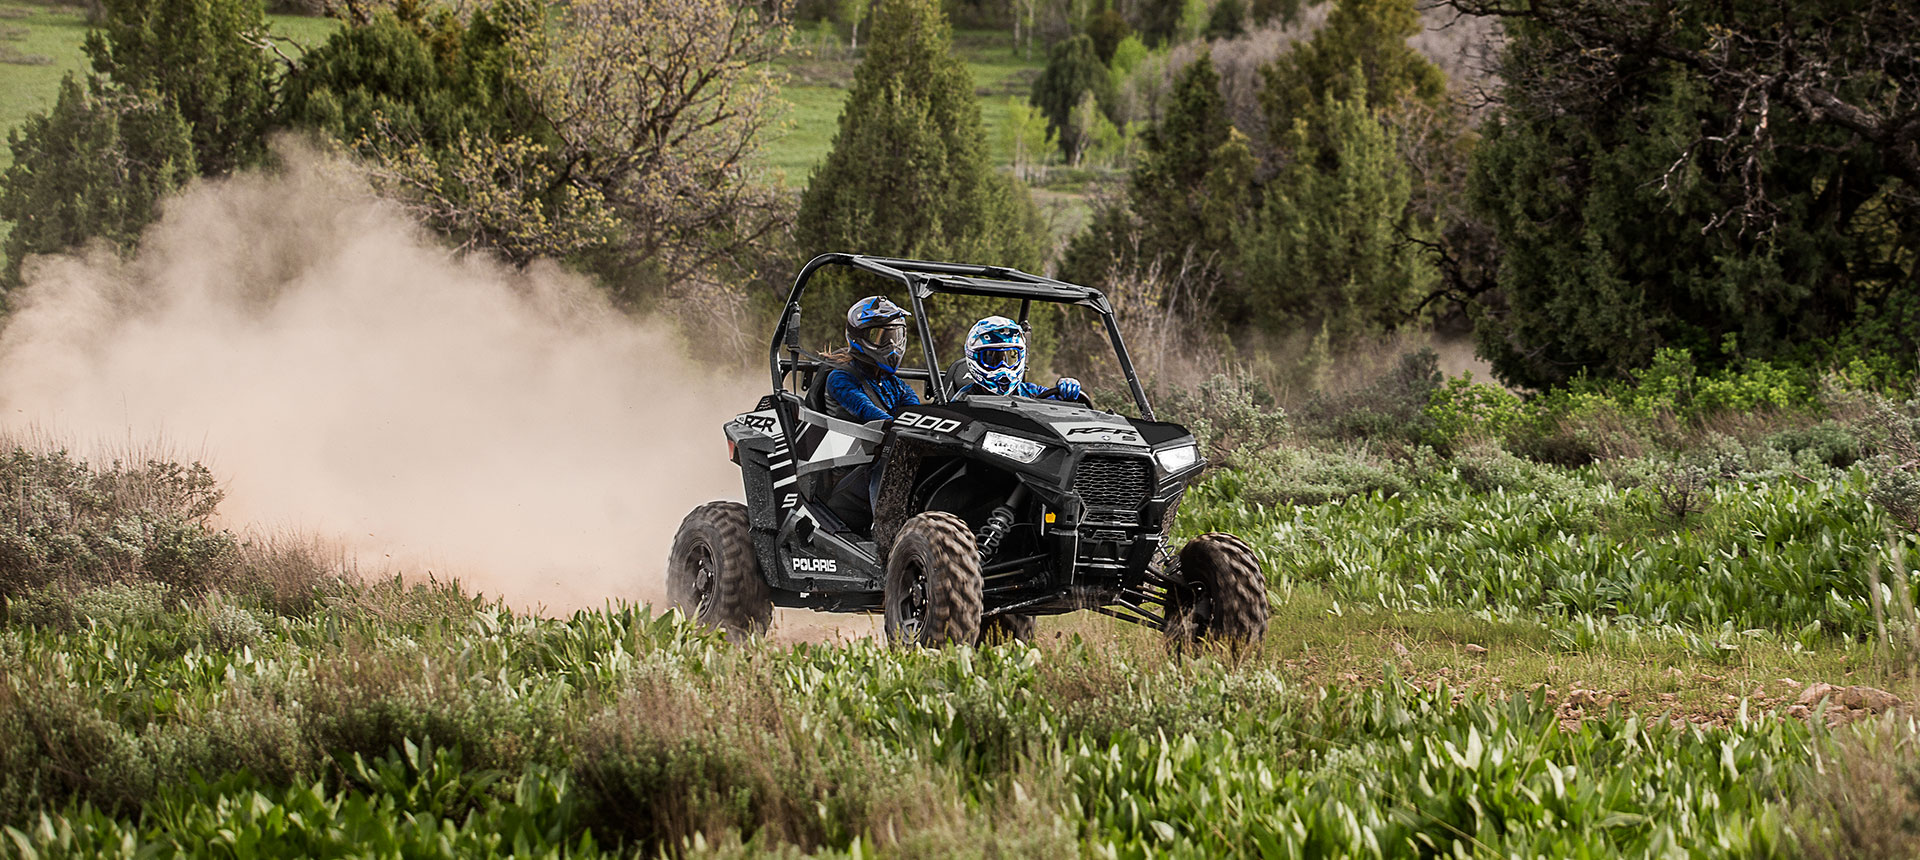 2019 Polaris RZR S 900 in Philadelphia, Pennsylvania - Photo 5